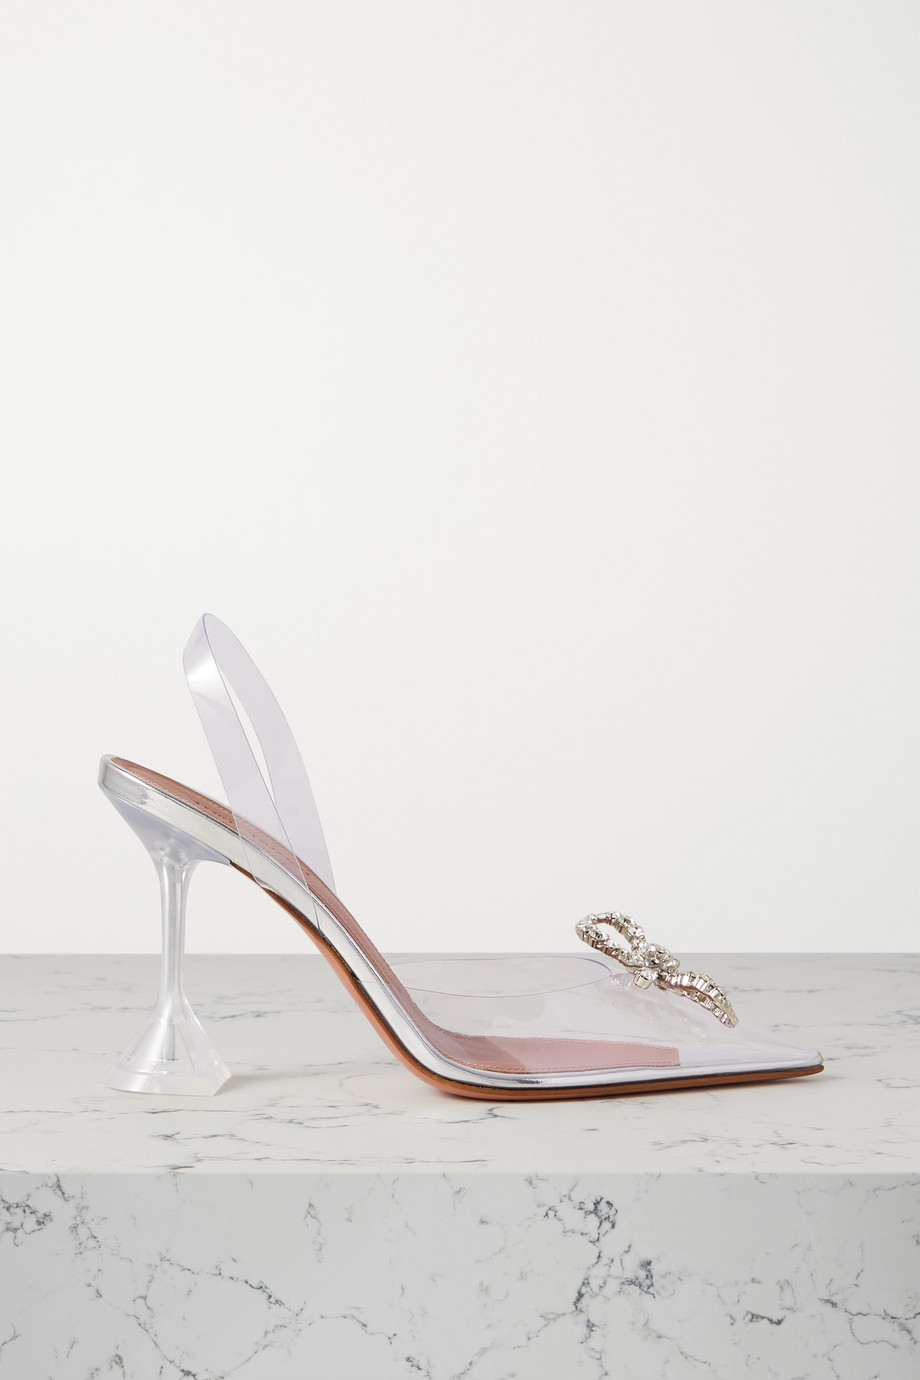 Amina Muaddi Rosie crystal-embellished bow-detailed PVC slingback pumps